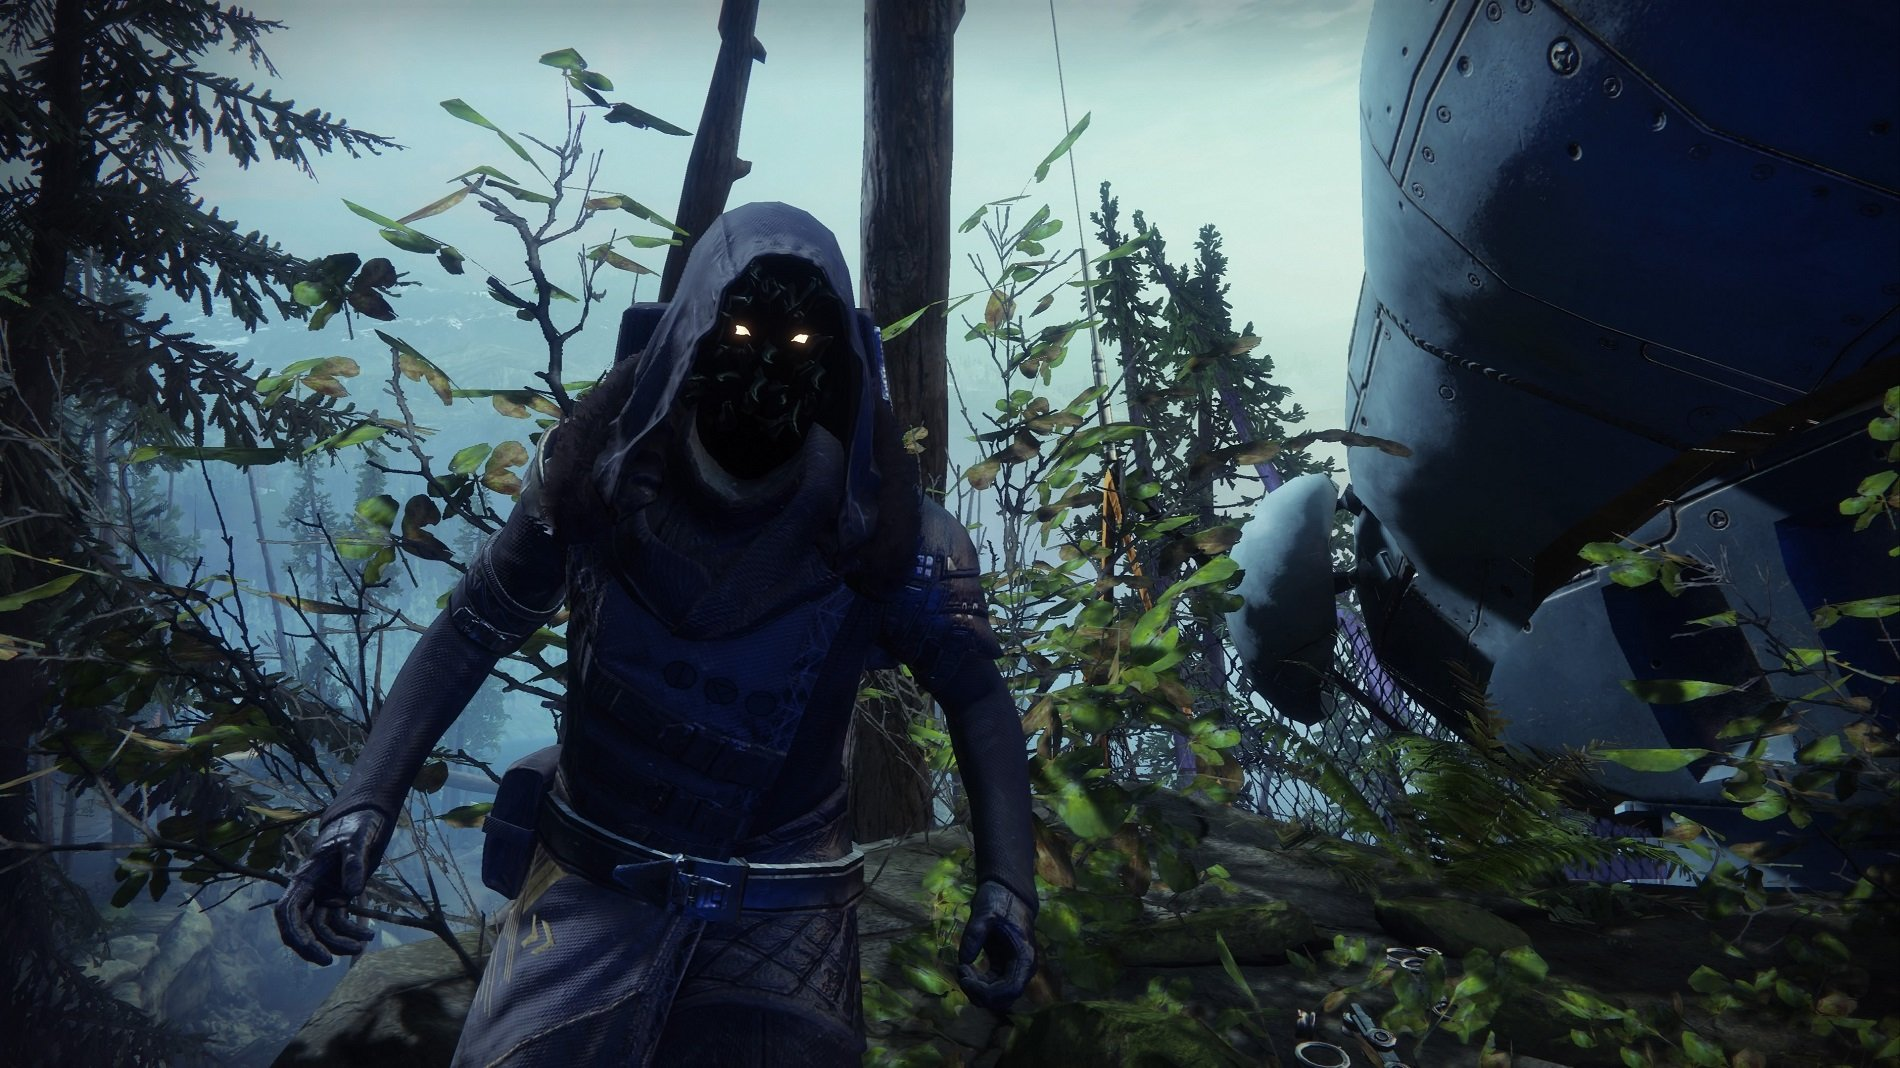 Xur Where To Find Xur In Destiny 2 August 9 2019 Allgamers